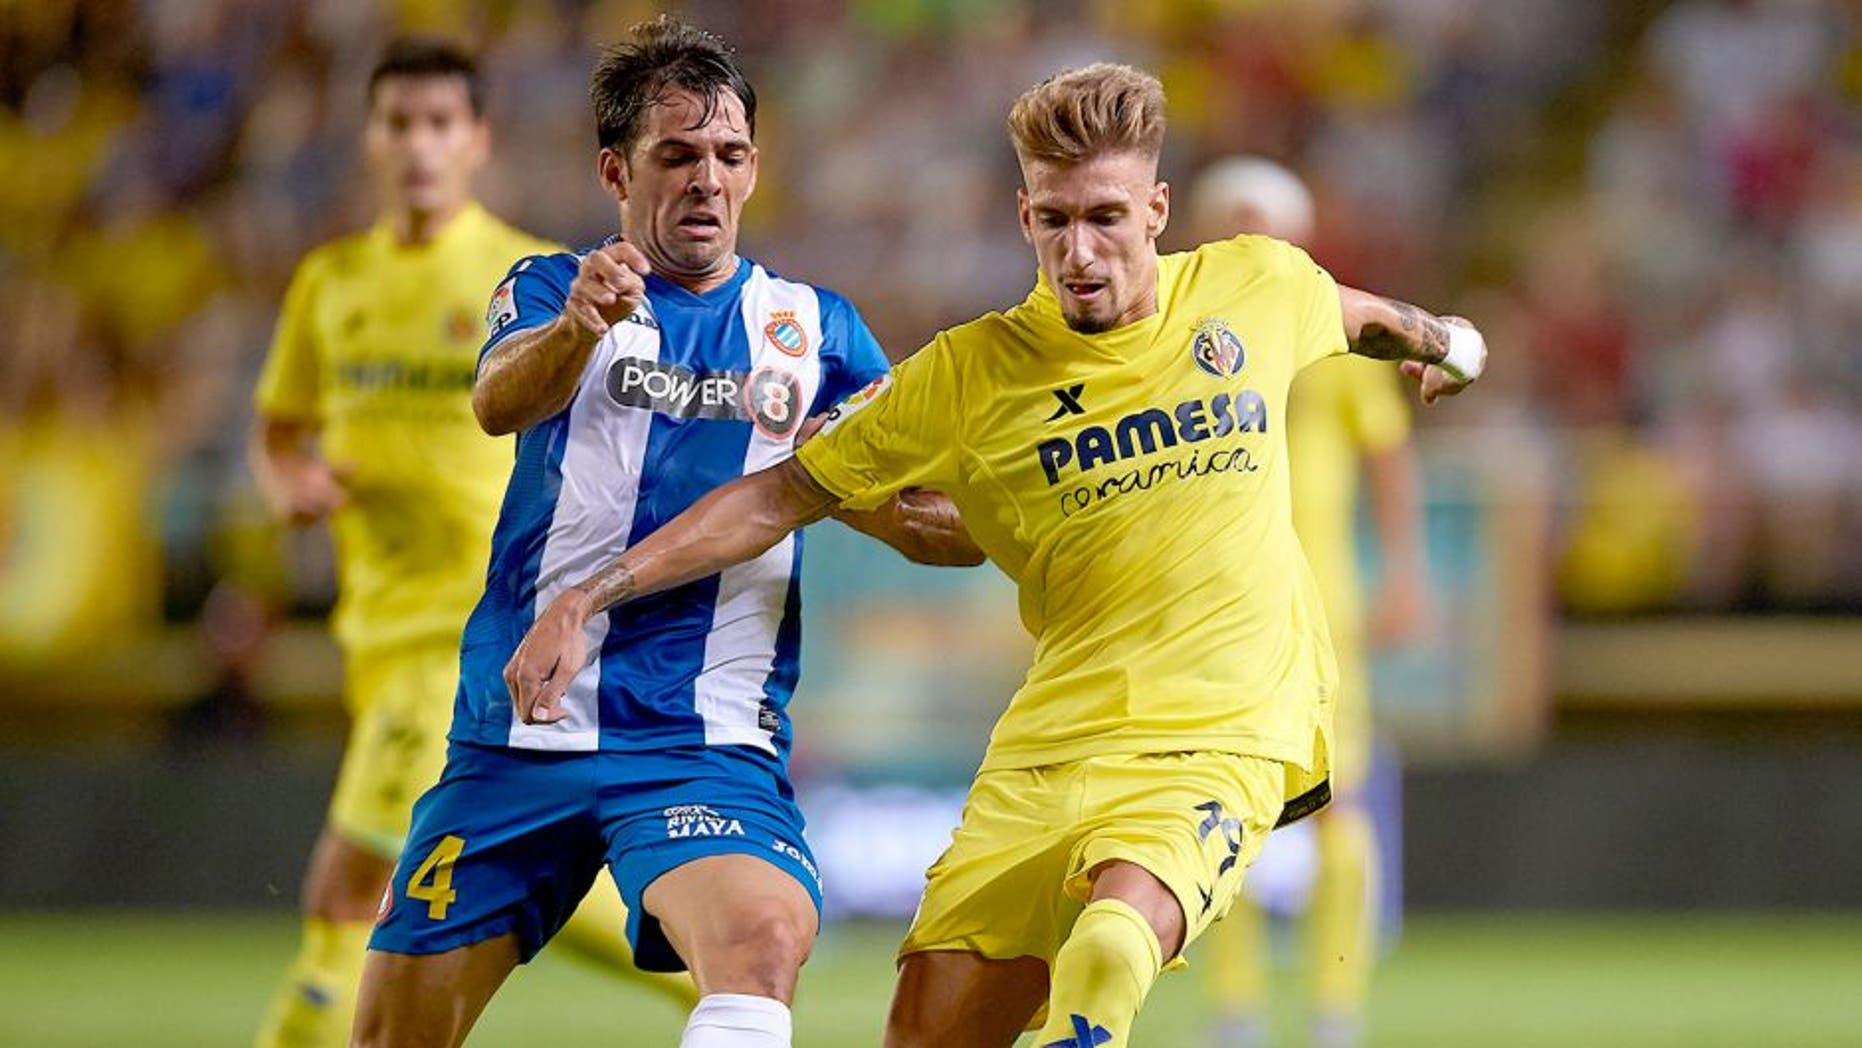 VILLARREAL, SPAIN - AUGUST 28: Samuel Castillejo (R) of Villarreal battle for the ball with Victor Sanchez of Espanyol during the La Liga match between Villarreal CF and RCD Espanyol at El Madrigal Stadium on August 28, 2015 in Villarreal, Spain. (Photo by Manuel Queimadelos Alonso/Getty Images)